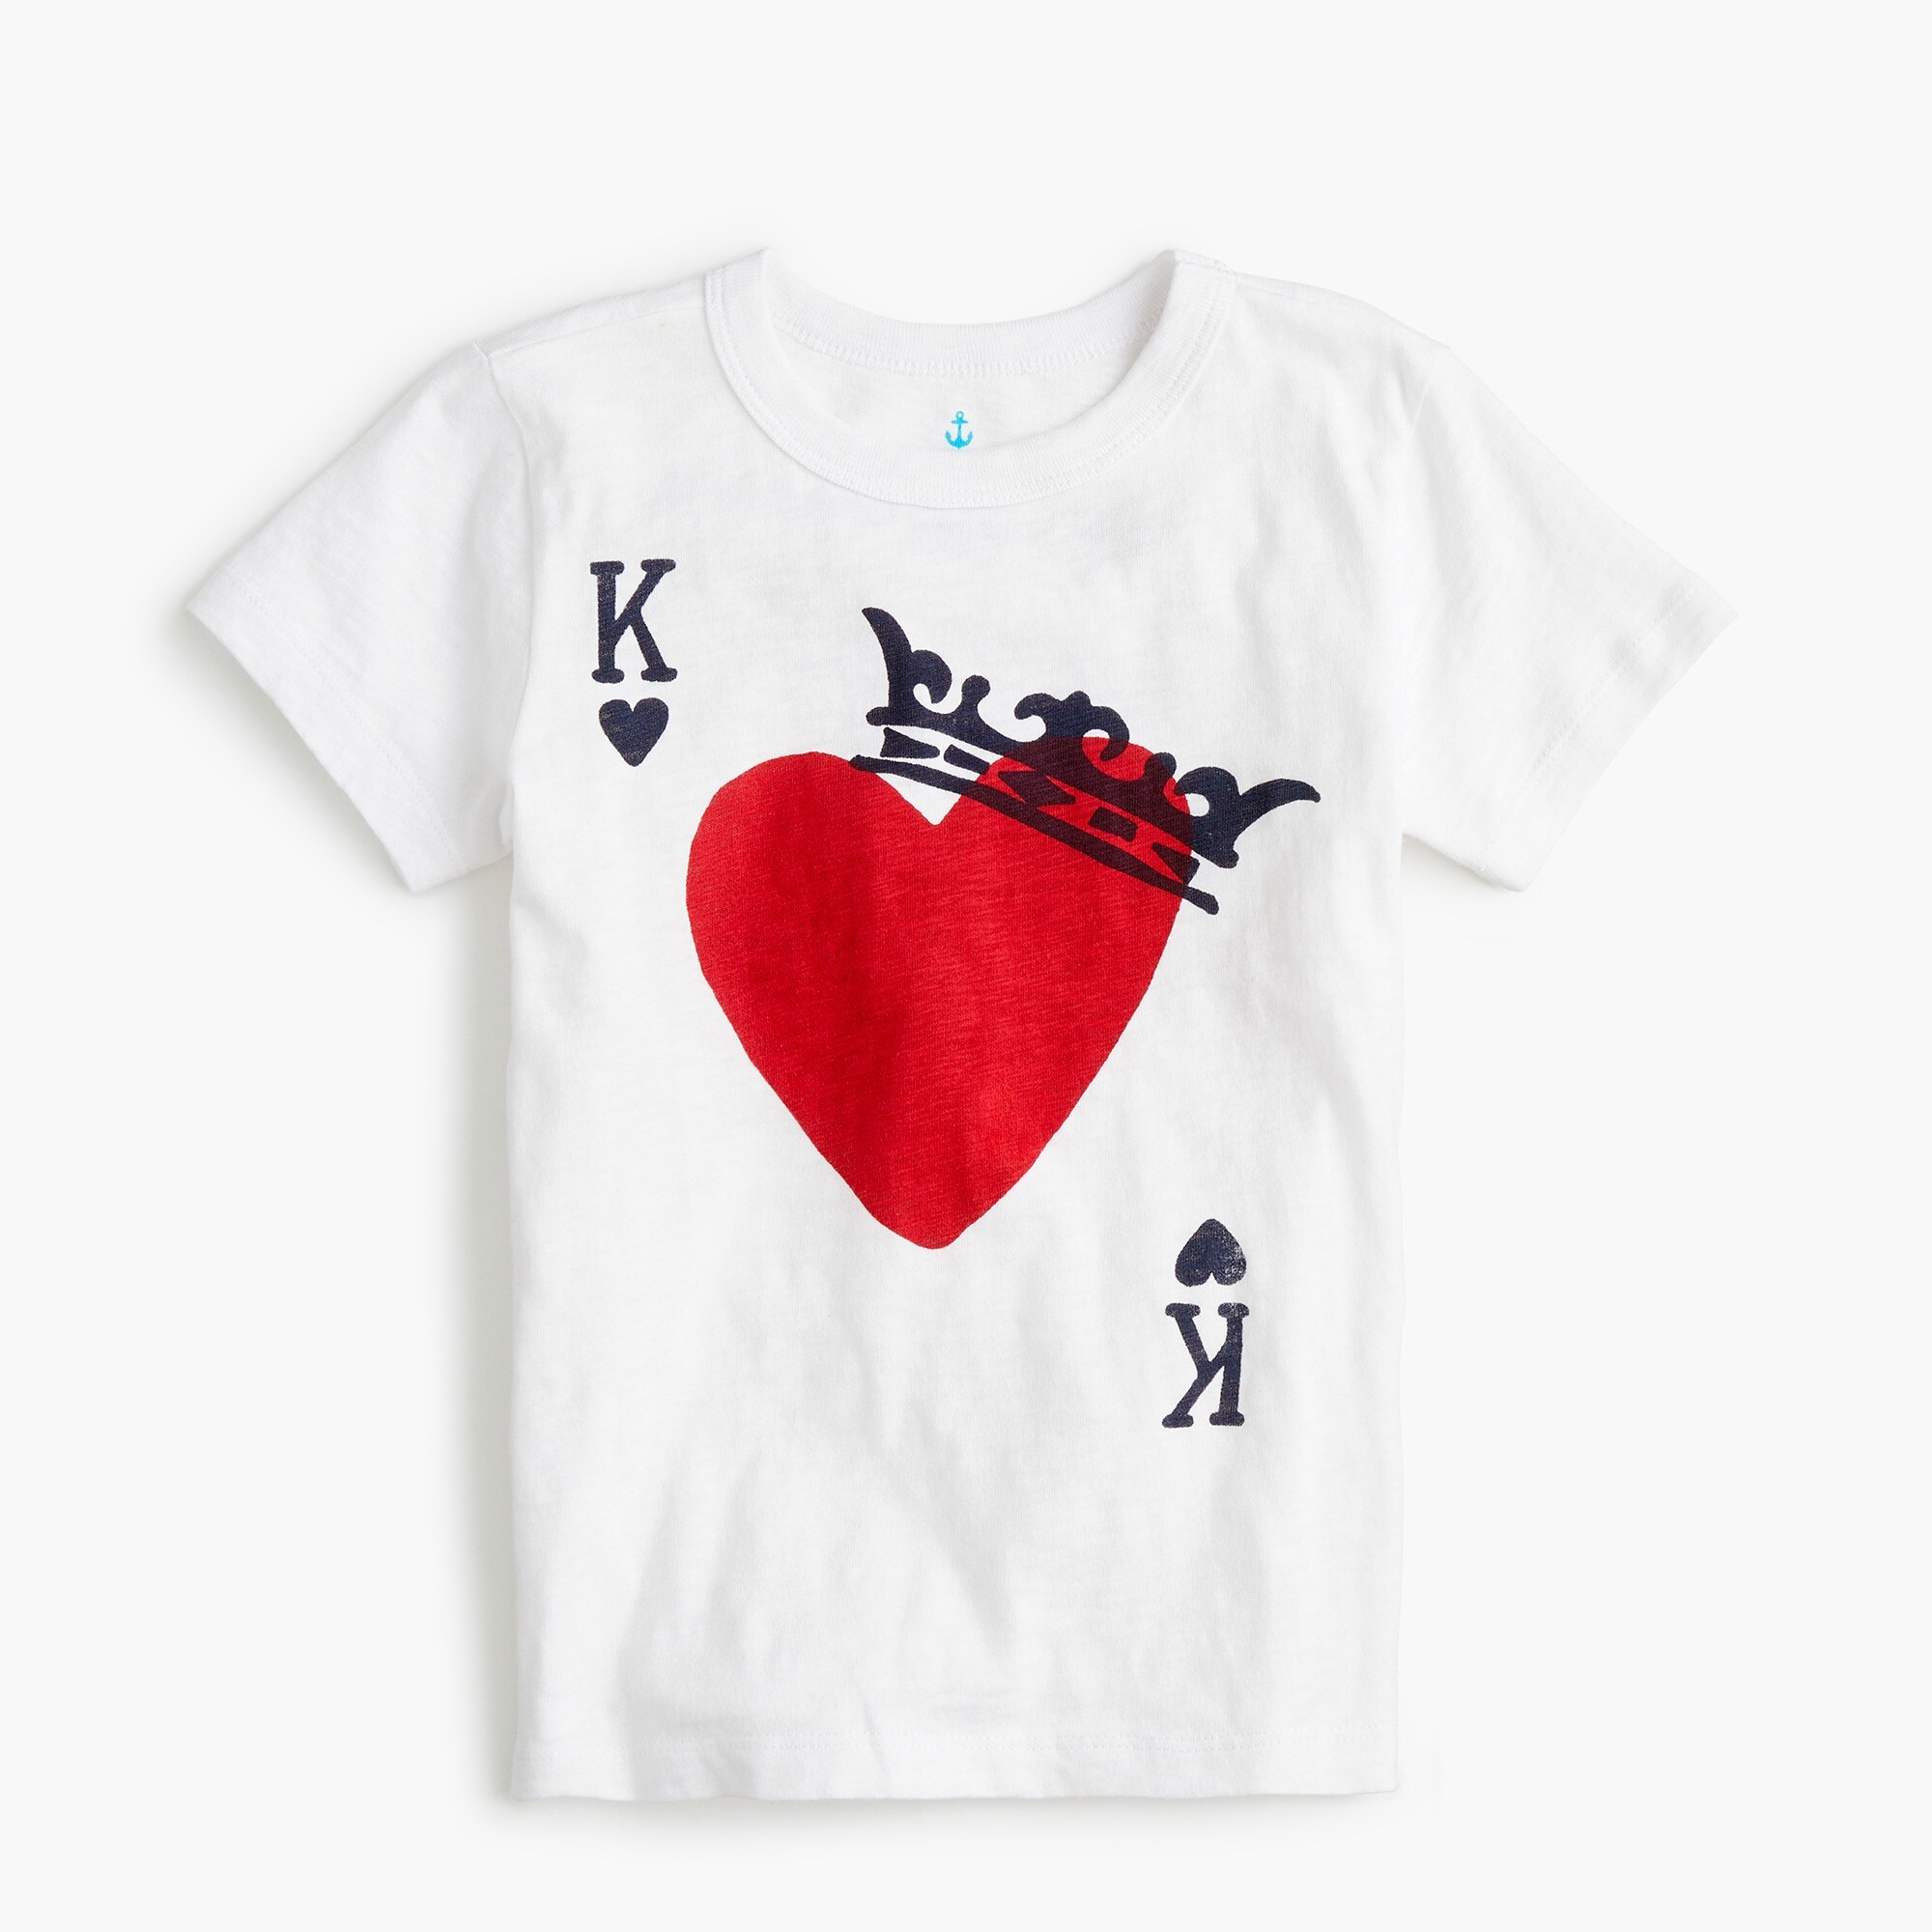 boys Kids' King of Hearts T-shirt